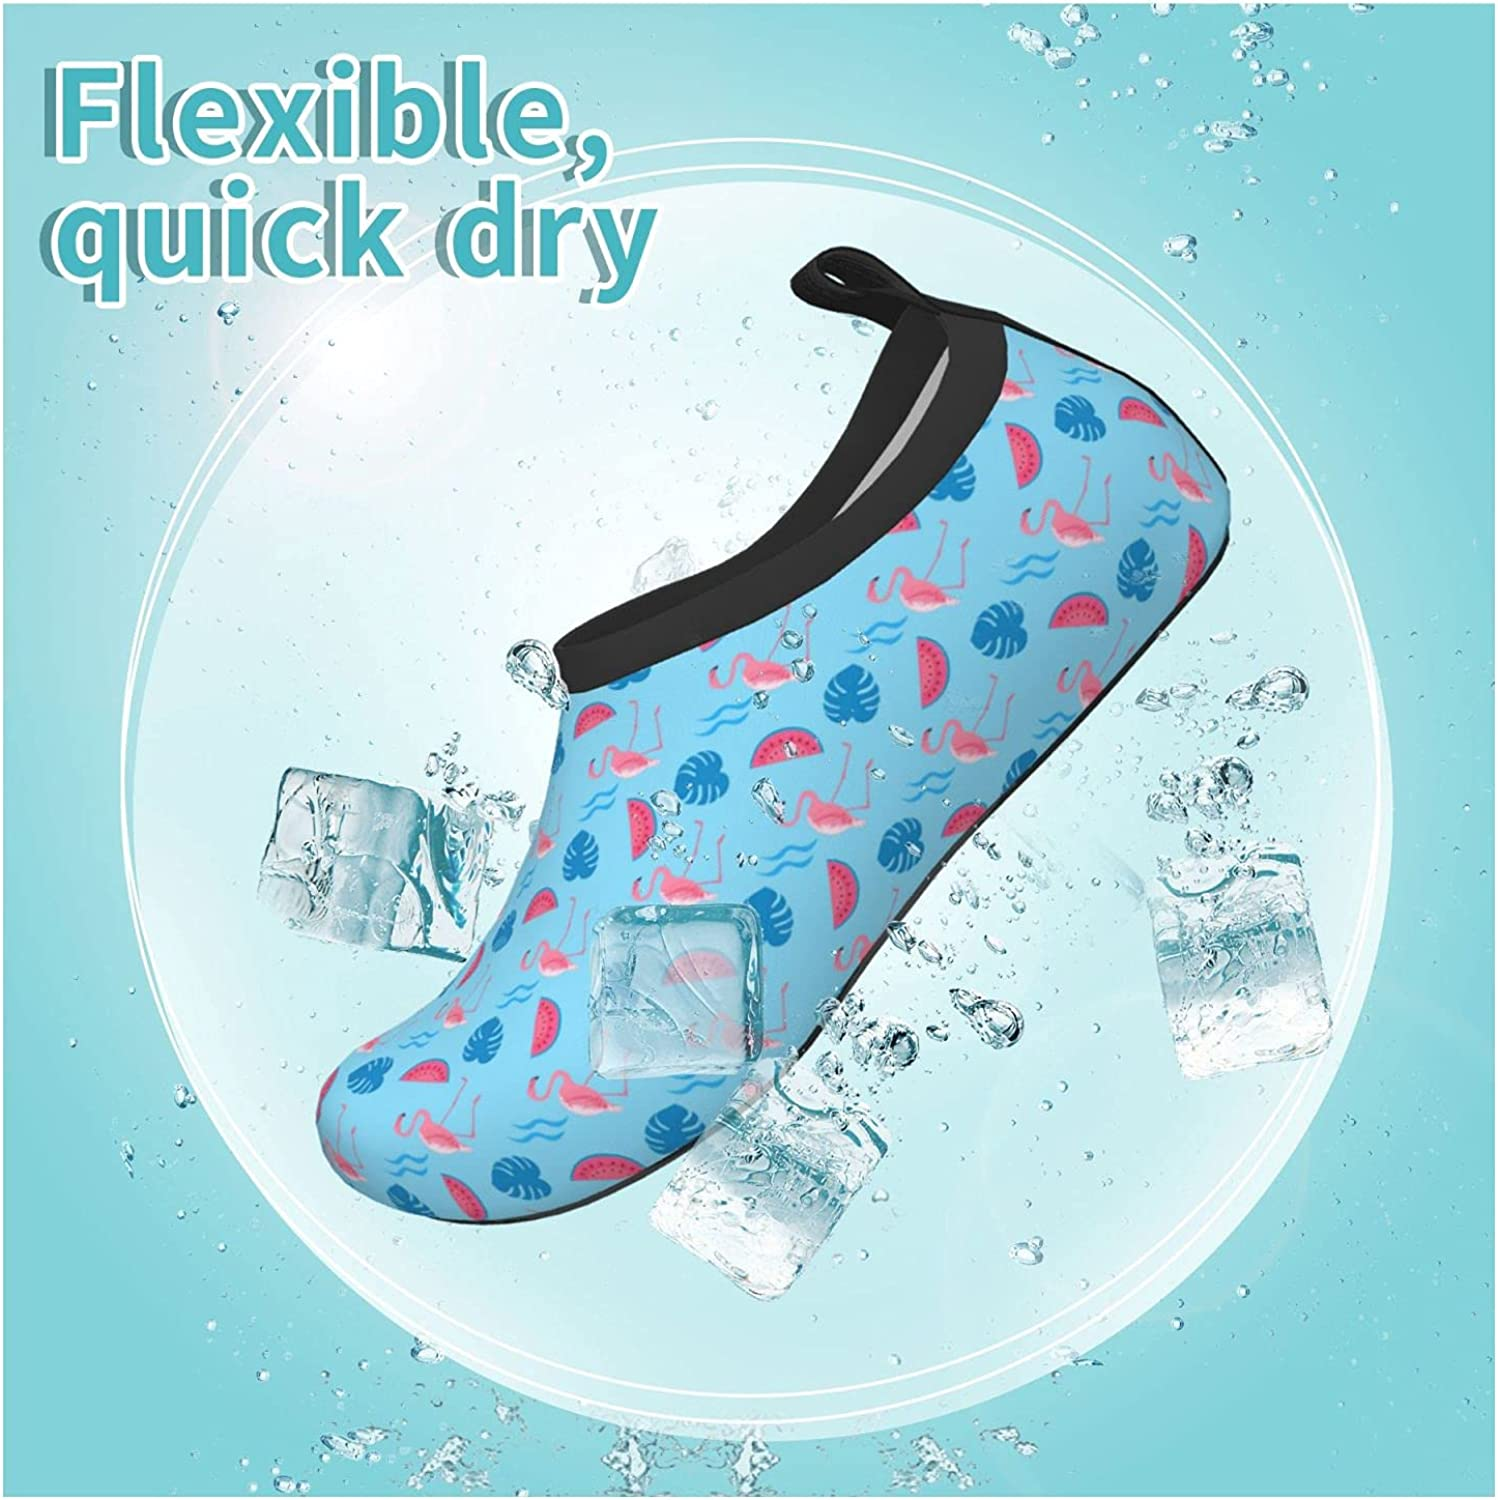 Jedenkuku Watermelon Flamingo Pink Fruit Melon Children's Water Shoes Feel Barefoot for Swimming Beach Boating Surfing Yoga